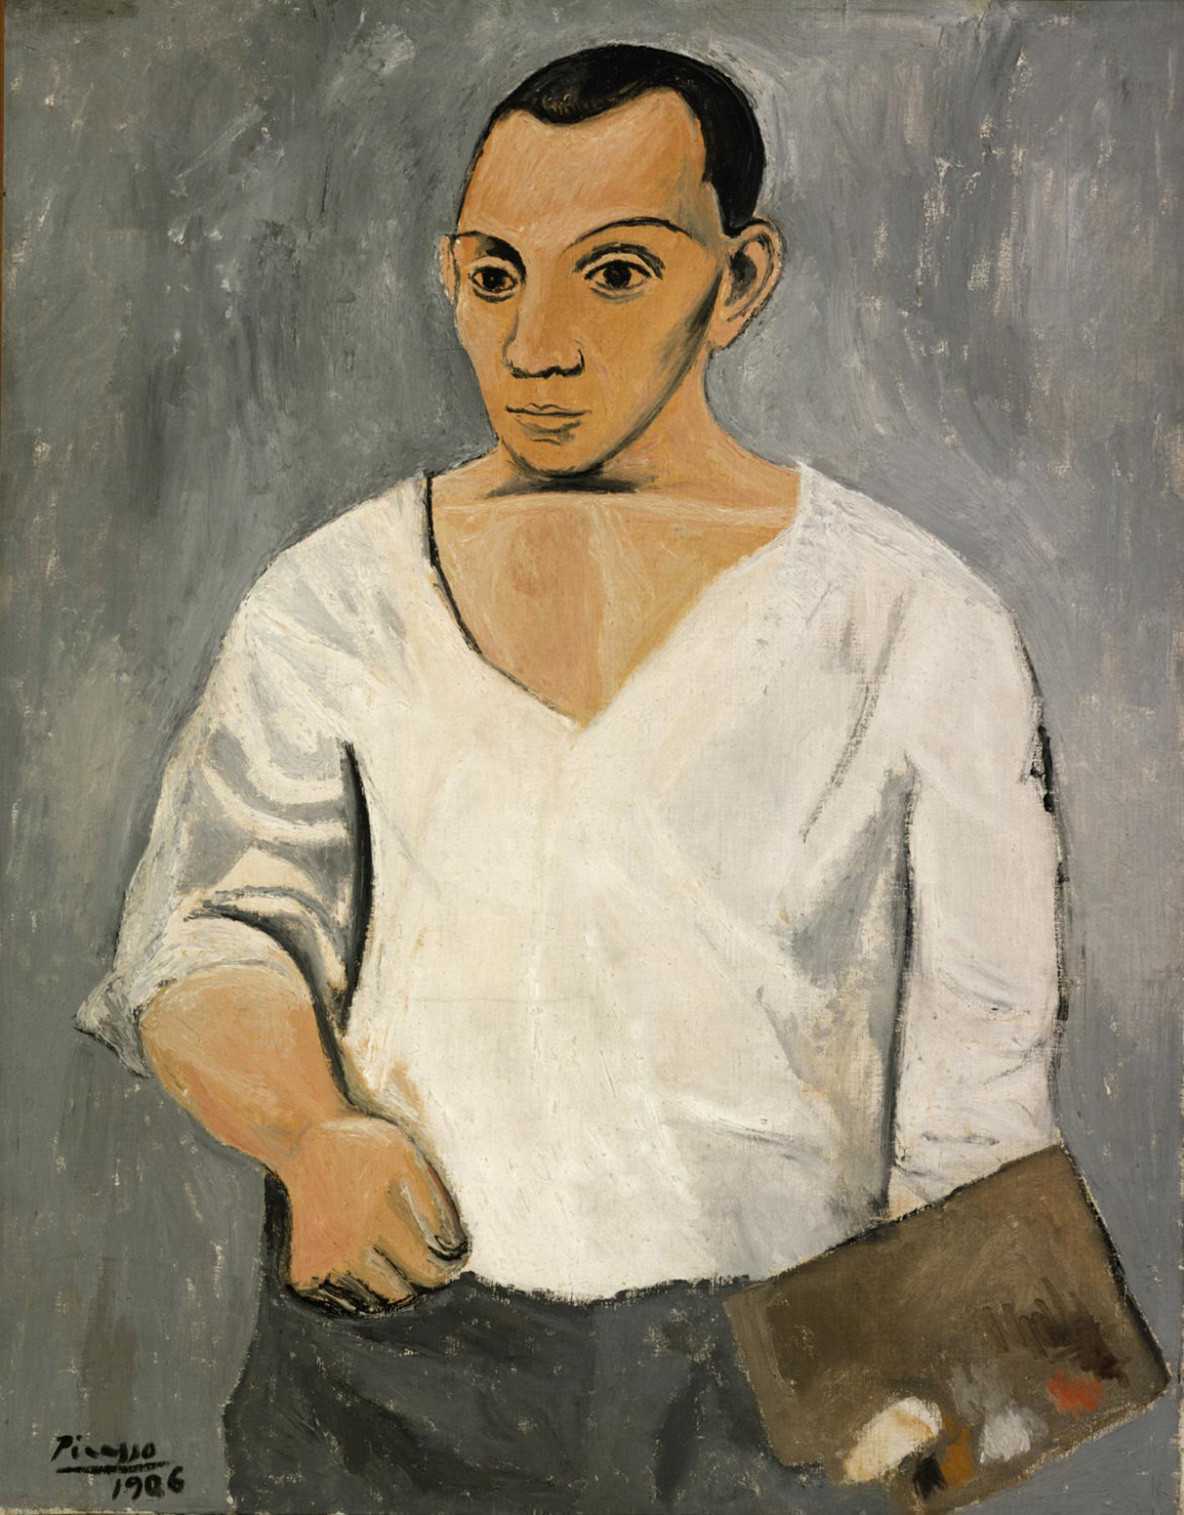 Pablo Picasso. Self-Portrait with Palette. 1906. Oil on canvas. 36 1⁄4 × 28 3/4″ (92 × 73 cm). Philadelphia Museum of Art: The A.E. Gallatin Collection, 1950. © 2003 Estate of Pablo Picasso/Artists Rights Society (ARS), New York